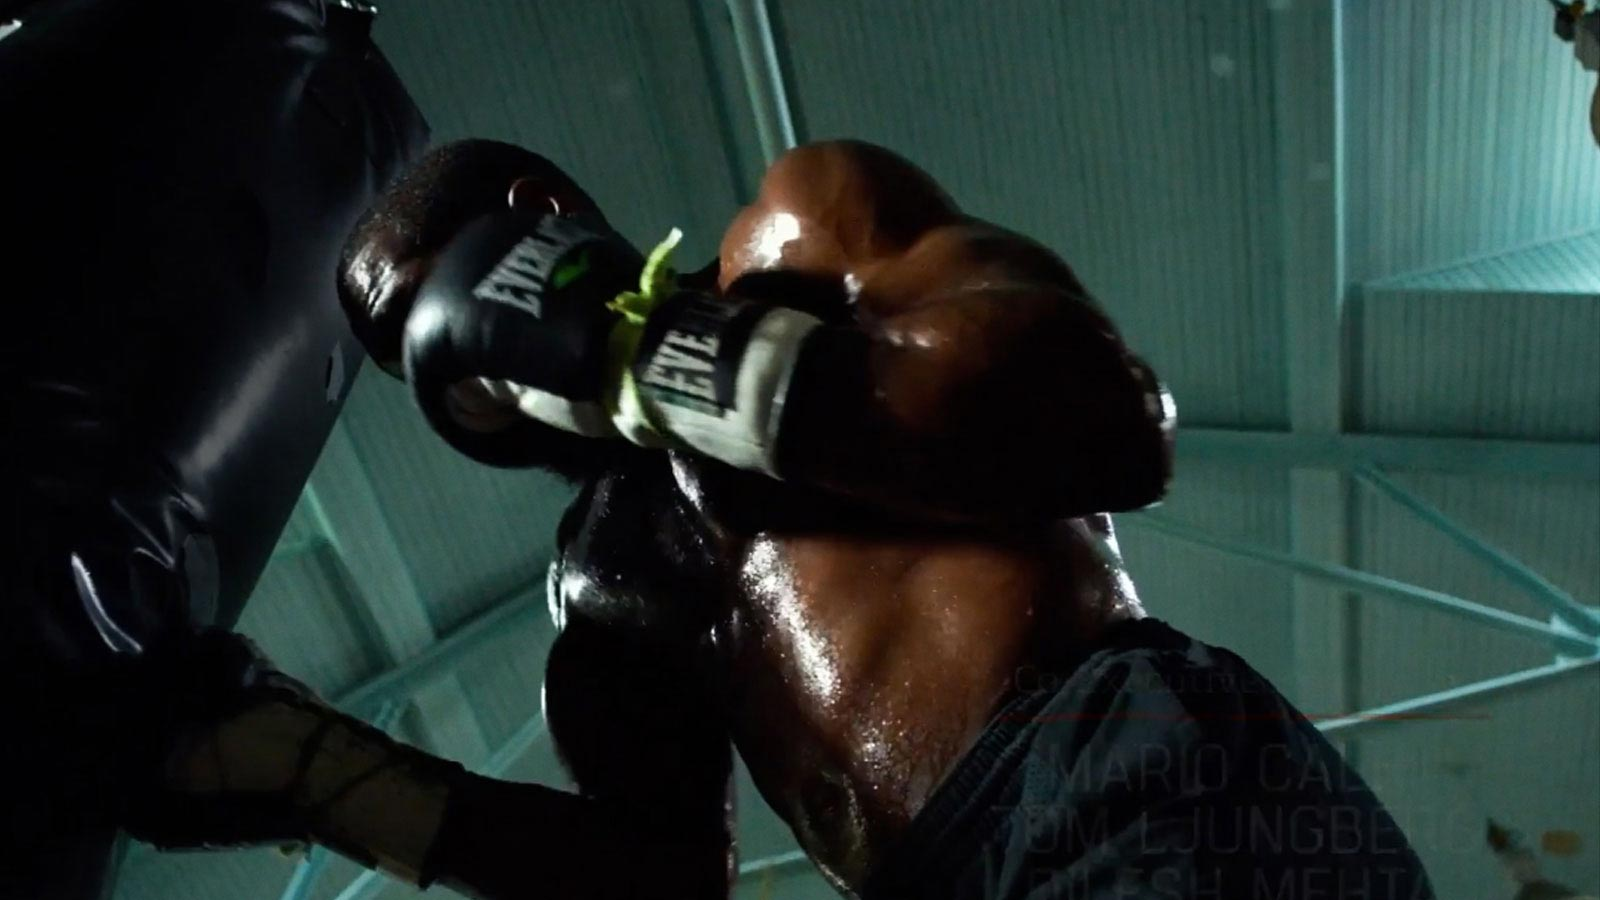 Still image from the movie showing a boxer punching a punching bag